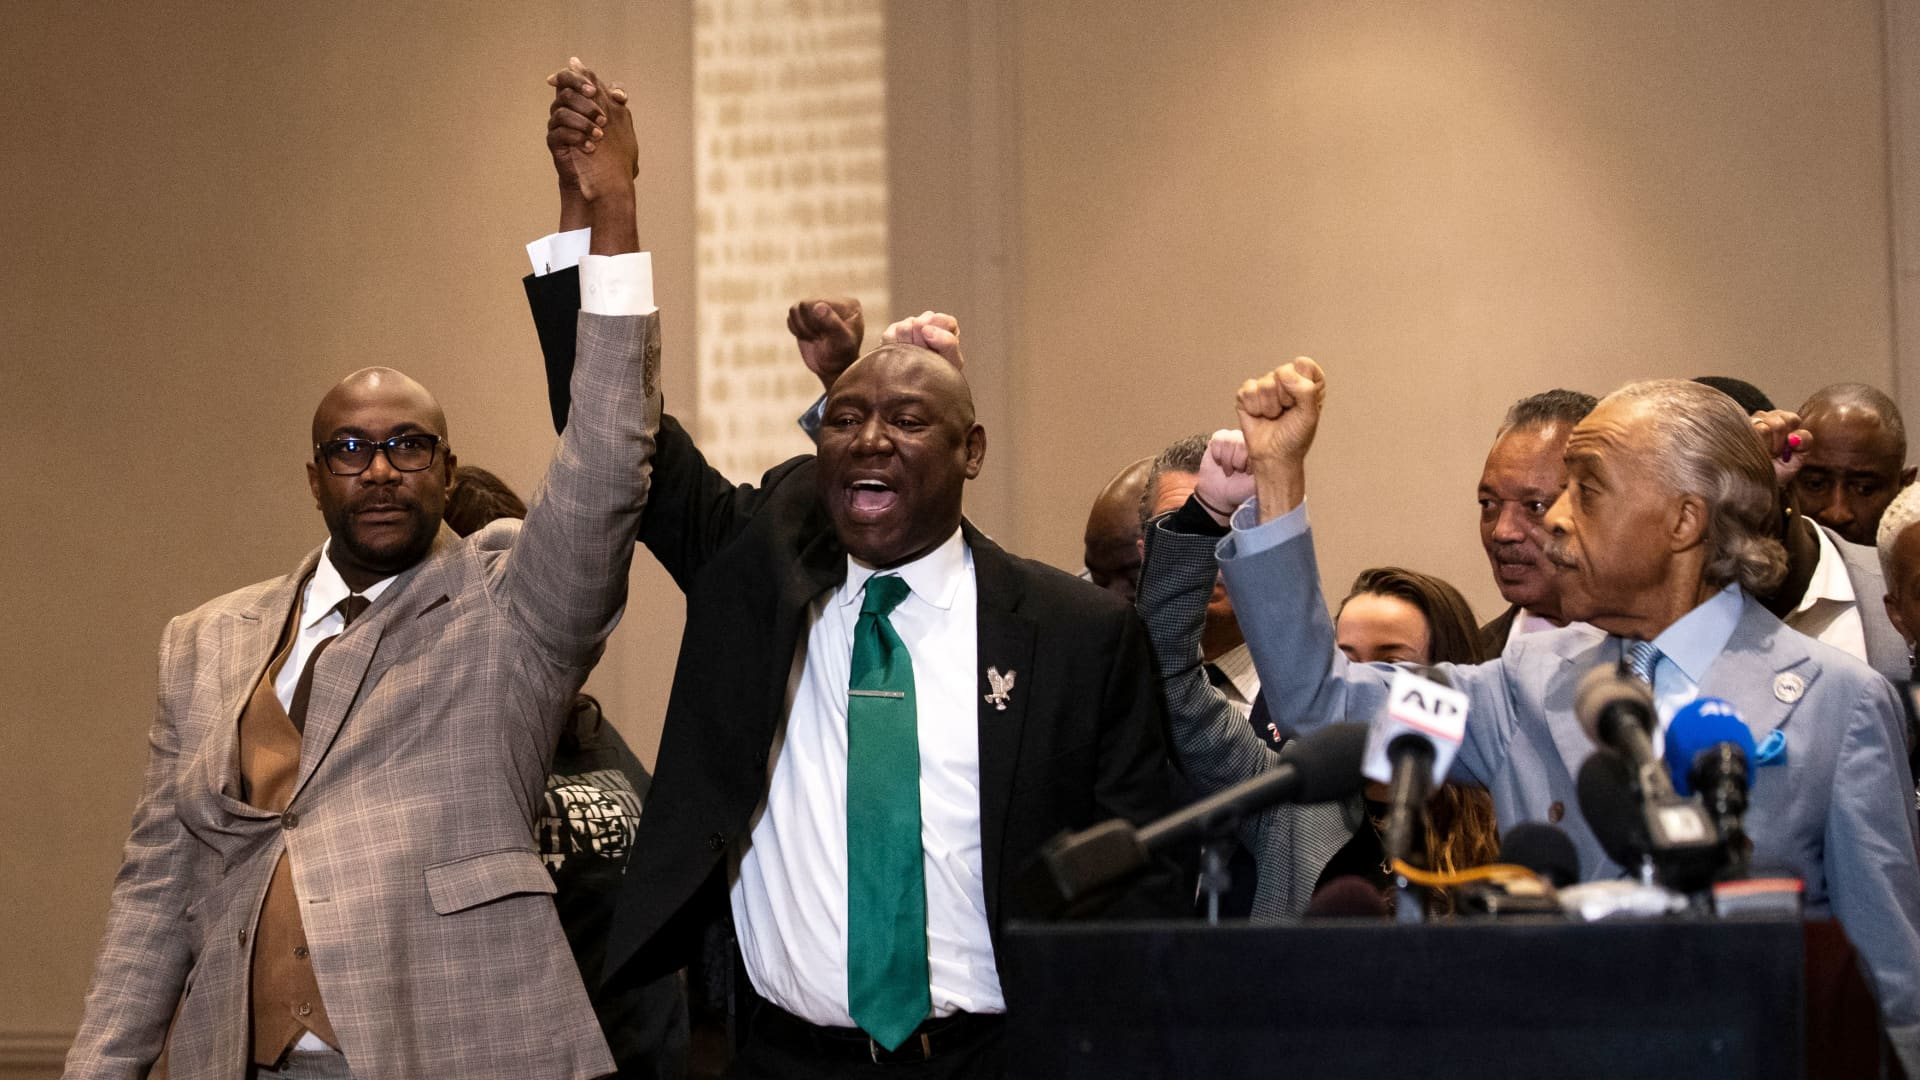 Philonise Floyd (L), Attorney Ben Crump (C) and Reverend Al Sharpton (R) react following the verdict in the trial of former police officer Derek Chauvin in Minneapolis, Minnesota on April 20, 2021.